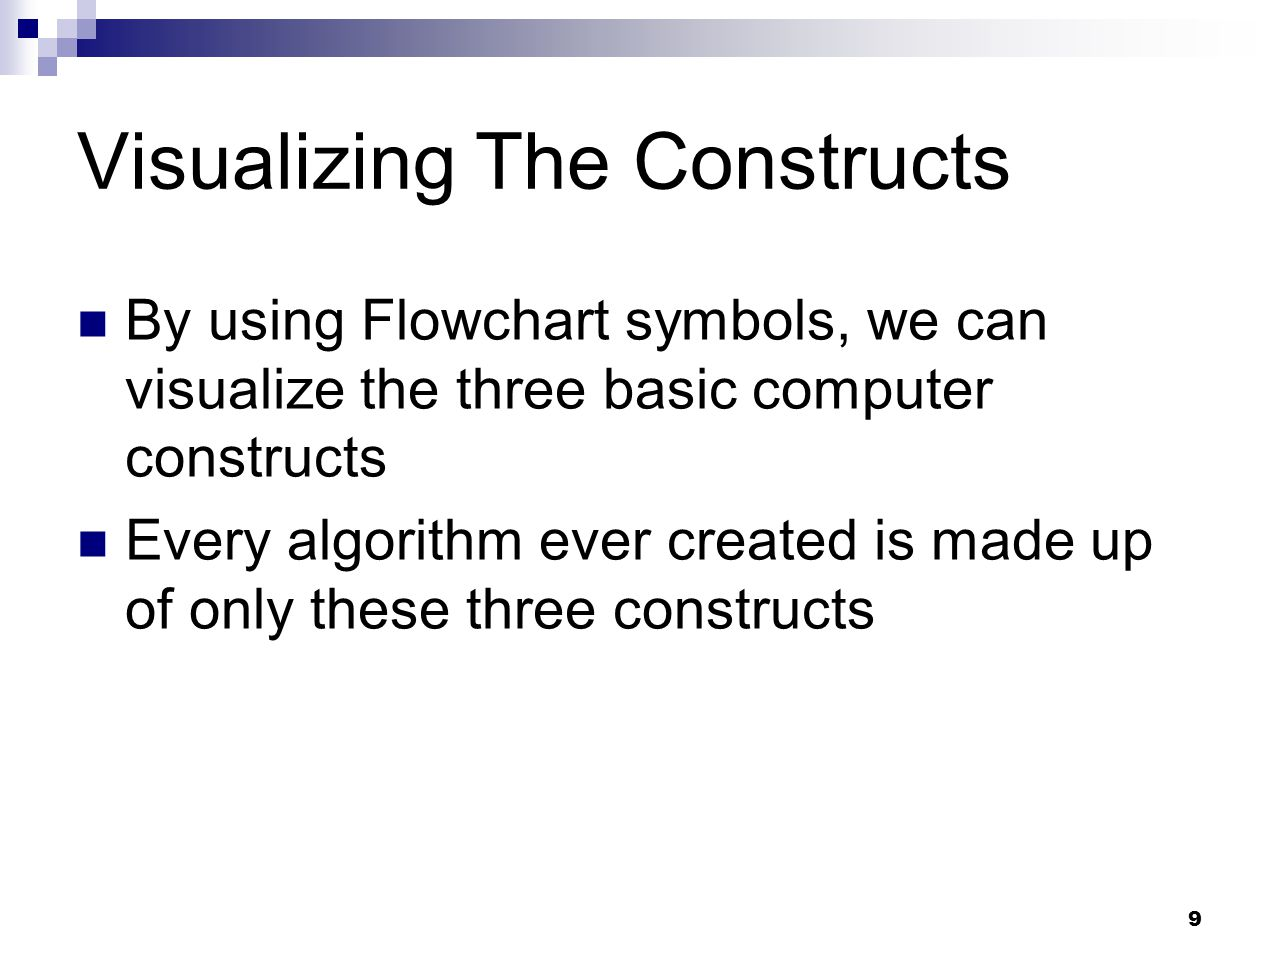 Visualizing The Constructs